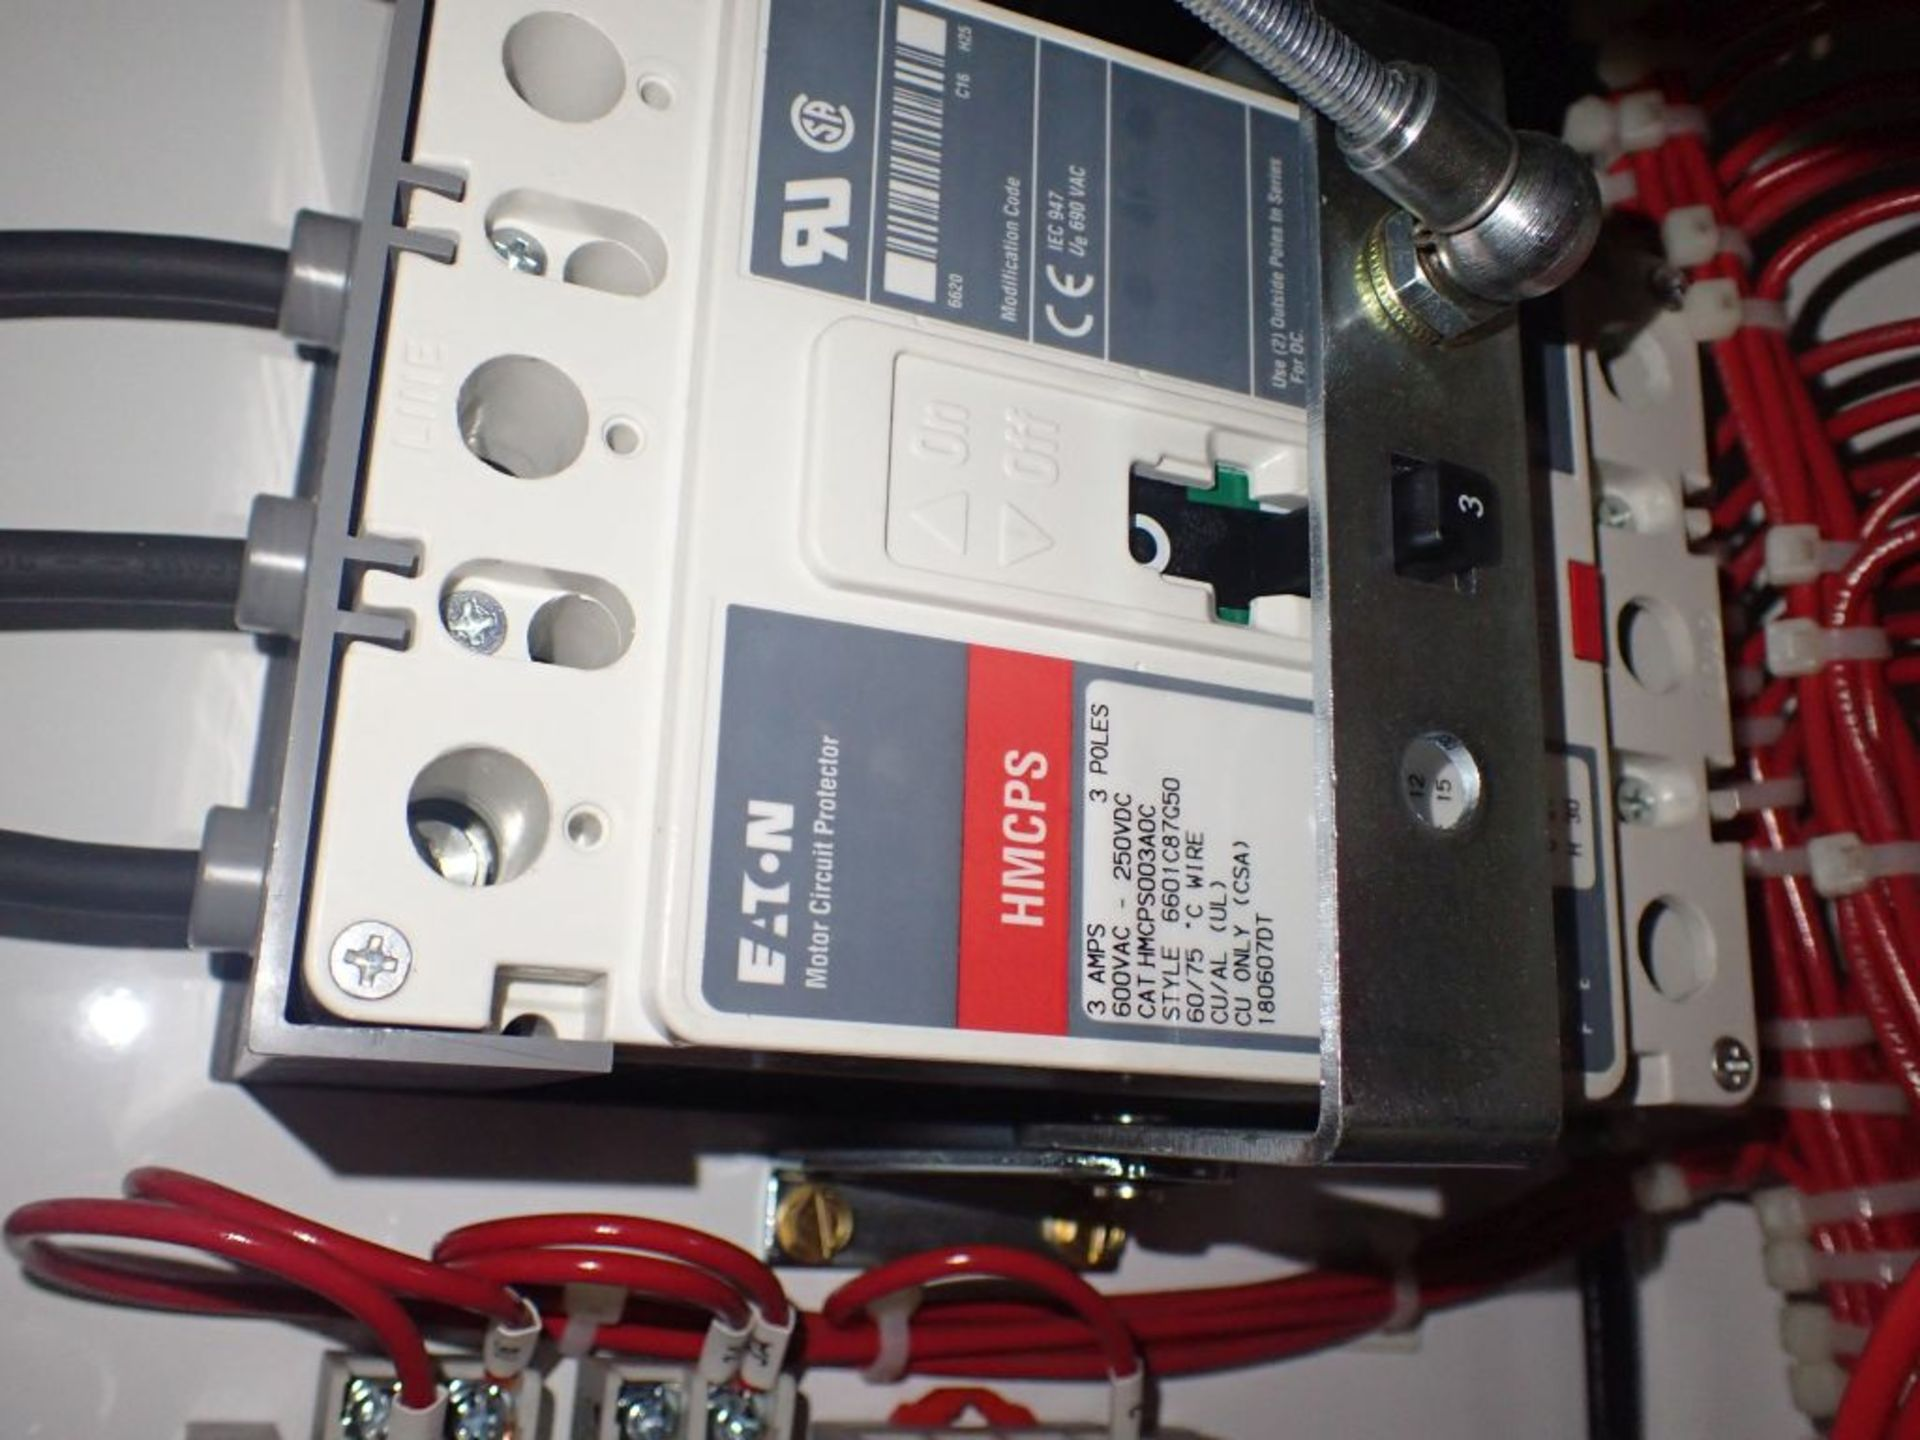 Eaton Freedom 2100 Series Motor Control Center | (2) F206-15A-10HP; (1) FDRB-250A; (1) FDRB-400A; ( - Image 82 of 104